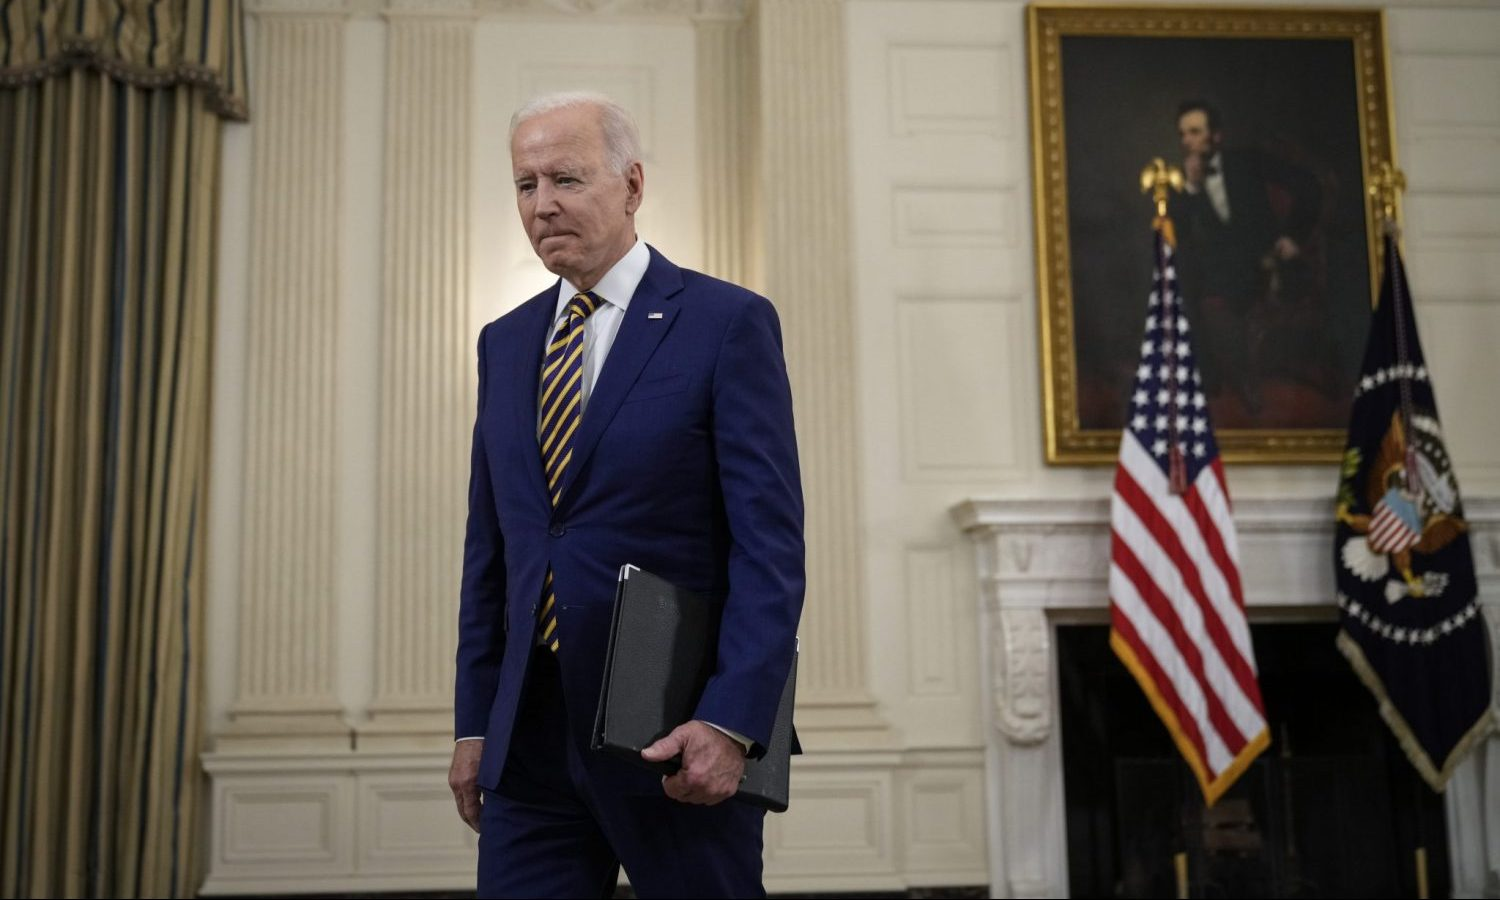 President Biden Lied When Campaigning In Support Of Medical Marijuana